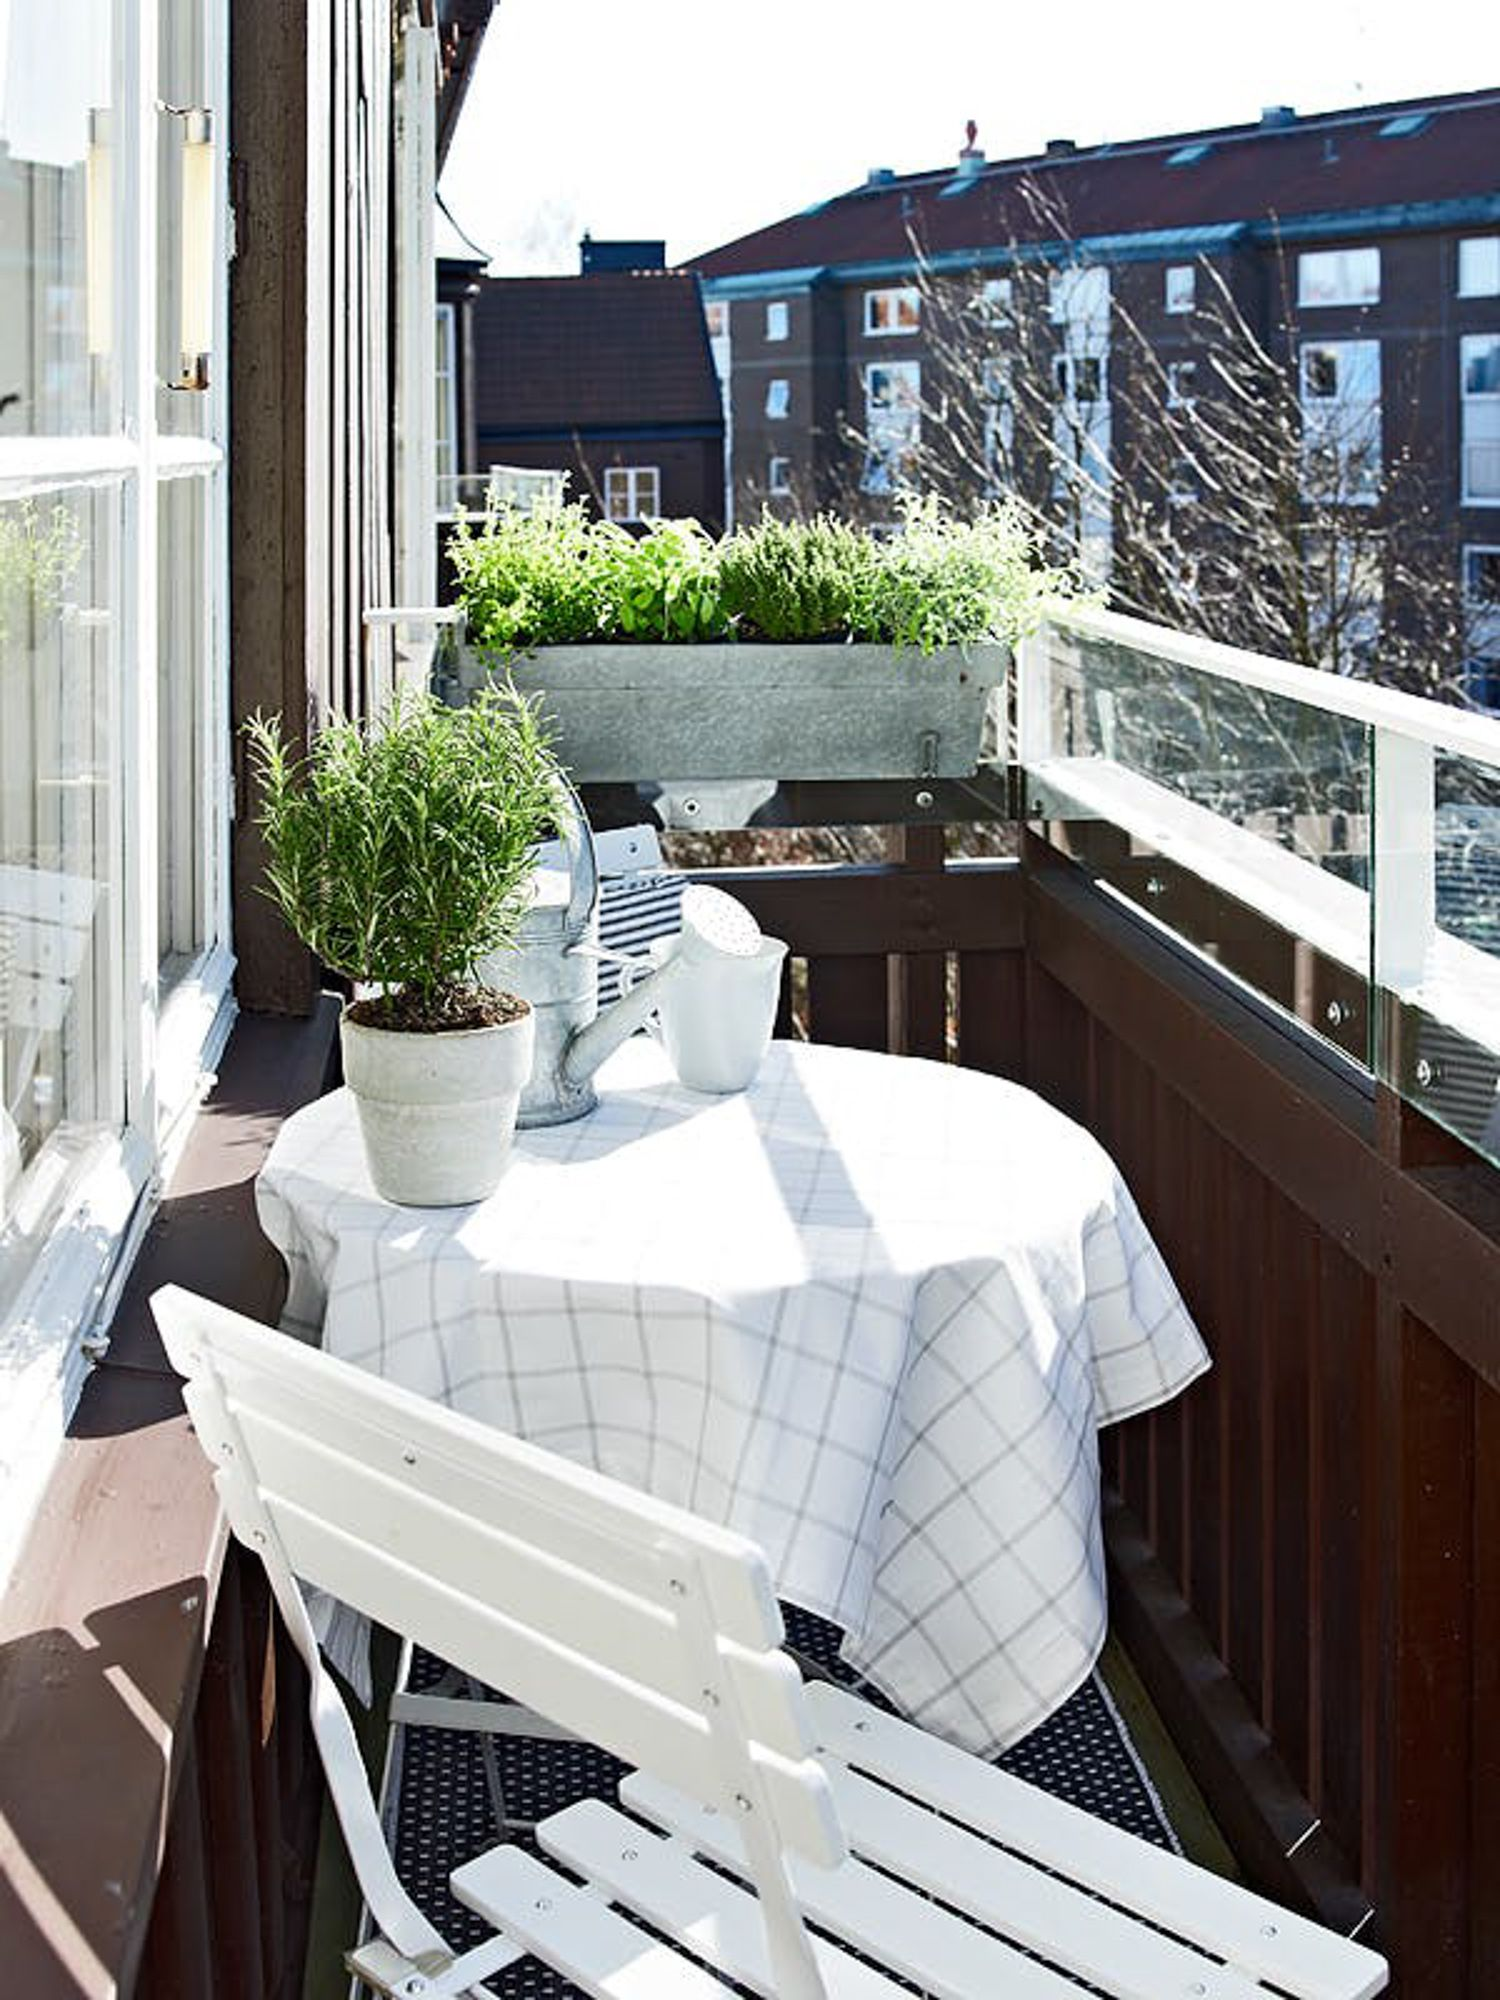 Balkon Inspiration Inspiration For Small Apartment Balconies In The City Balcony